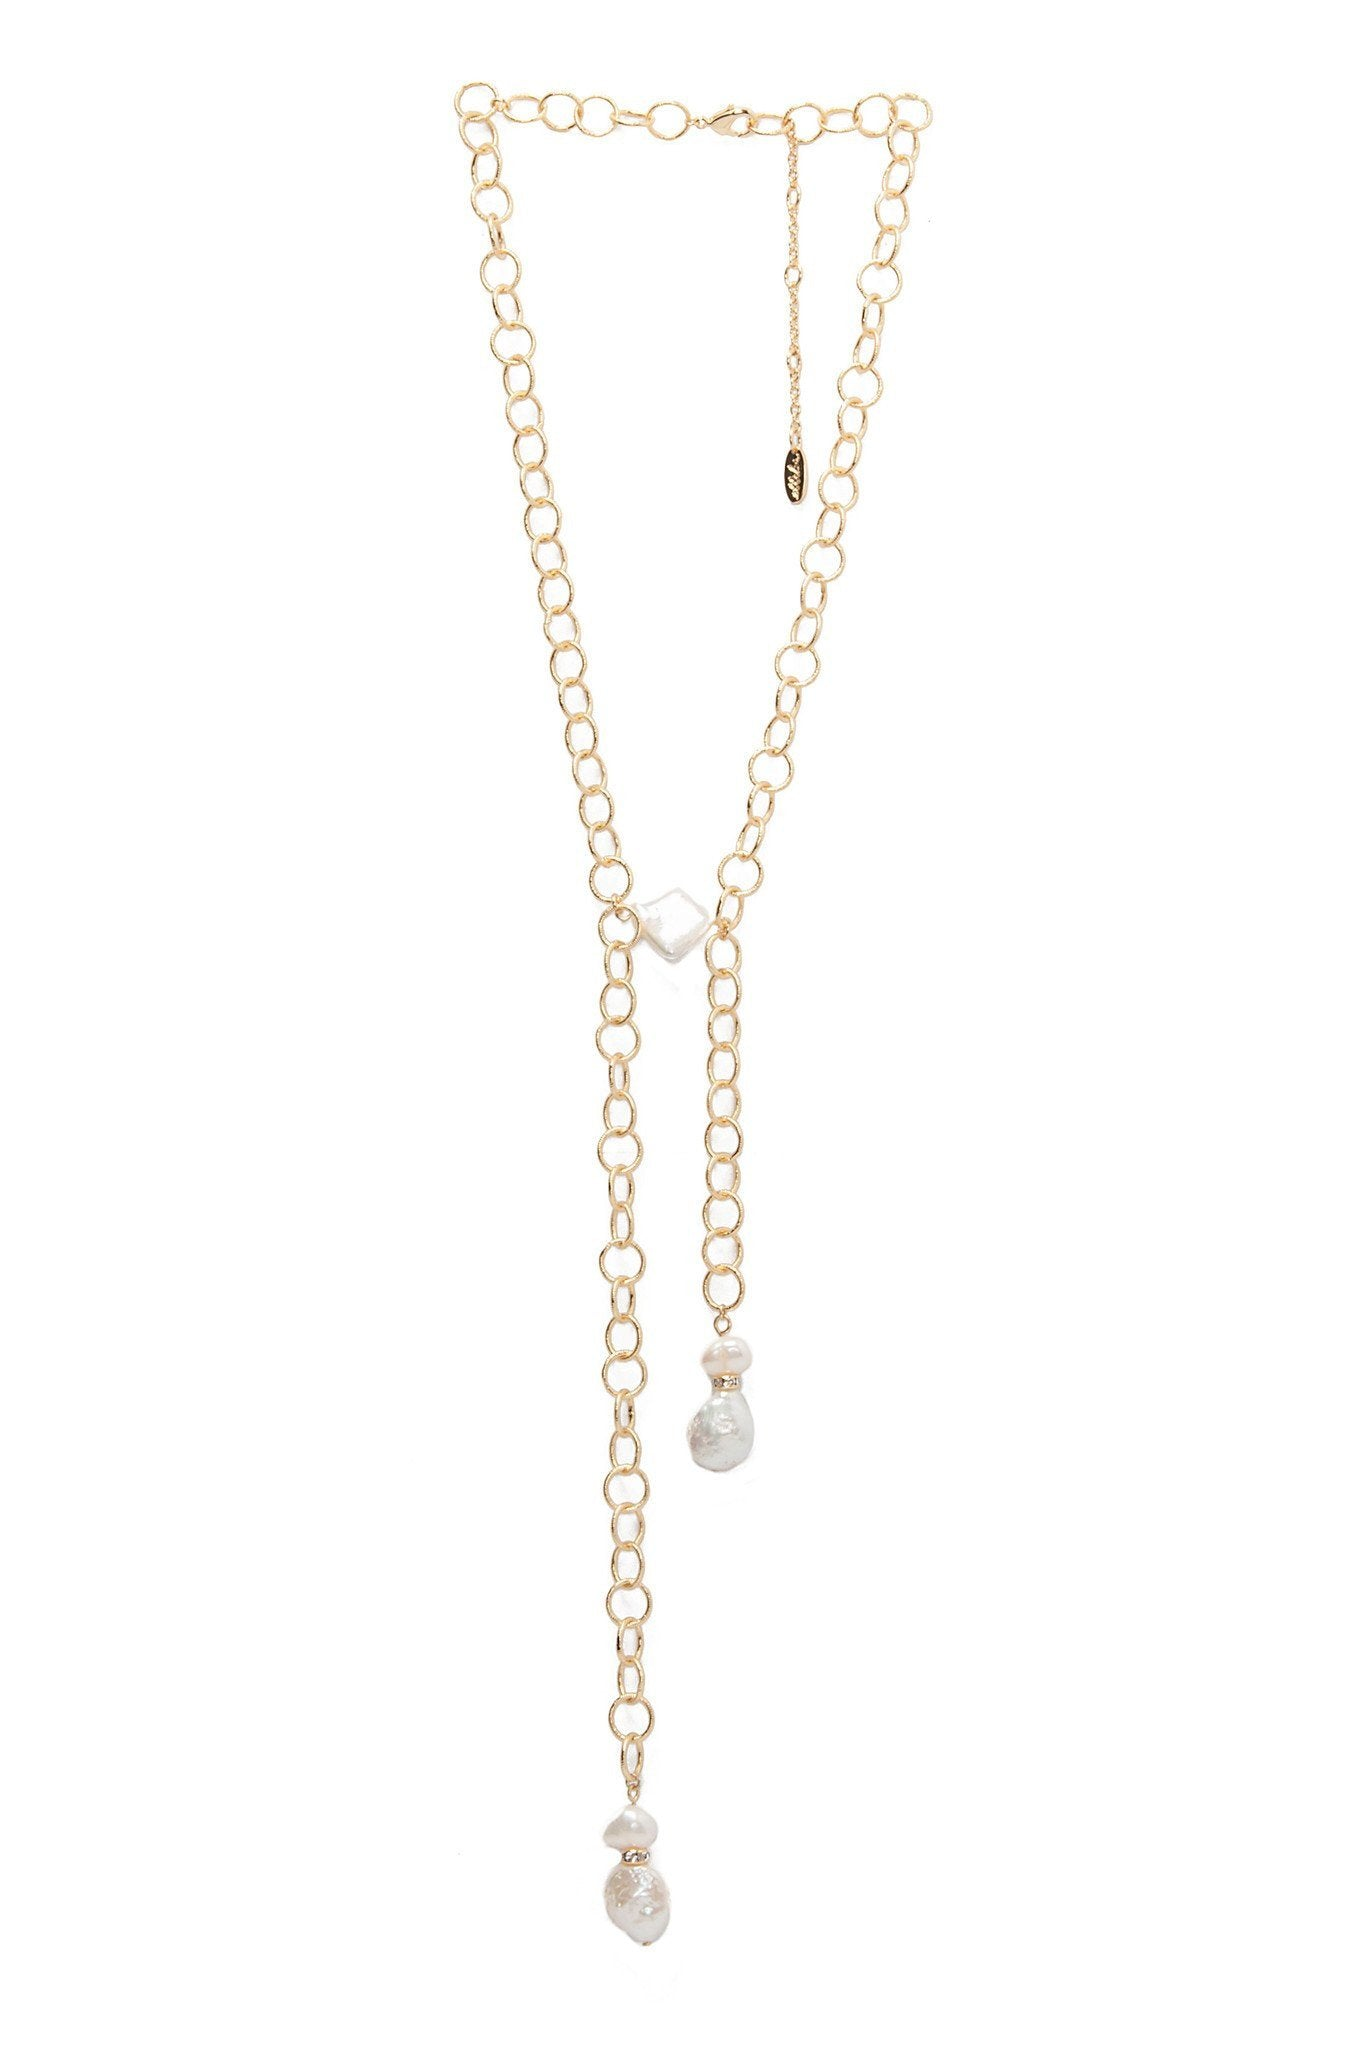 Aura Of Azure 18k Gold Plated Necklace in Pearl